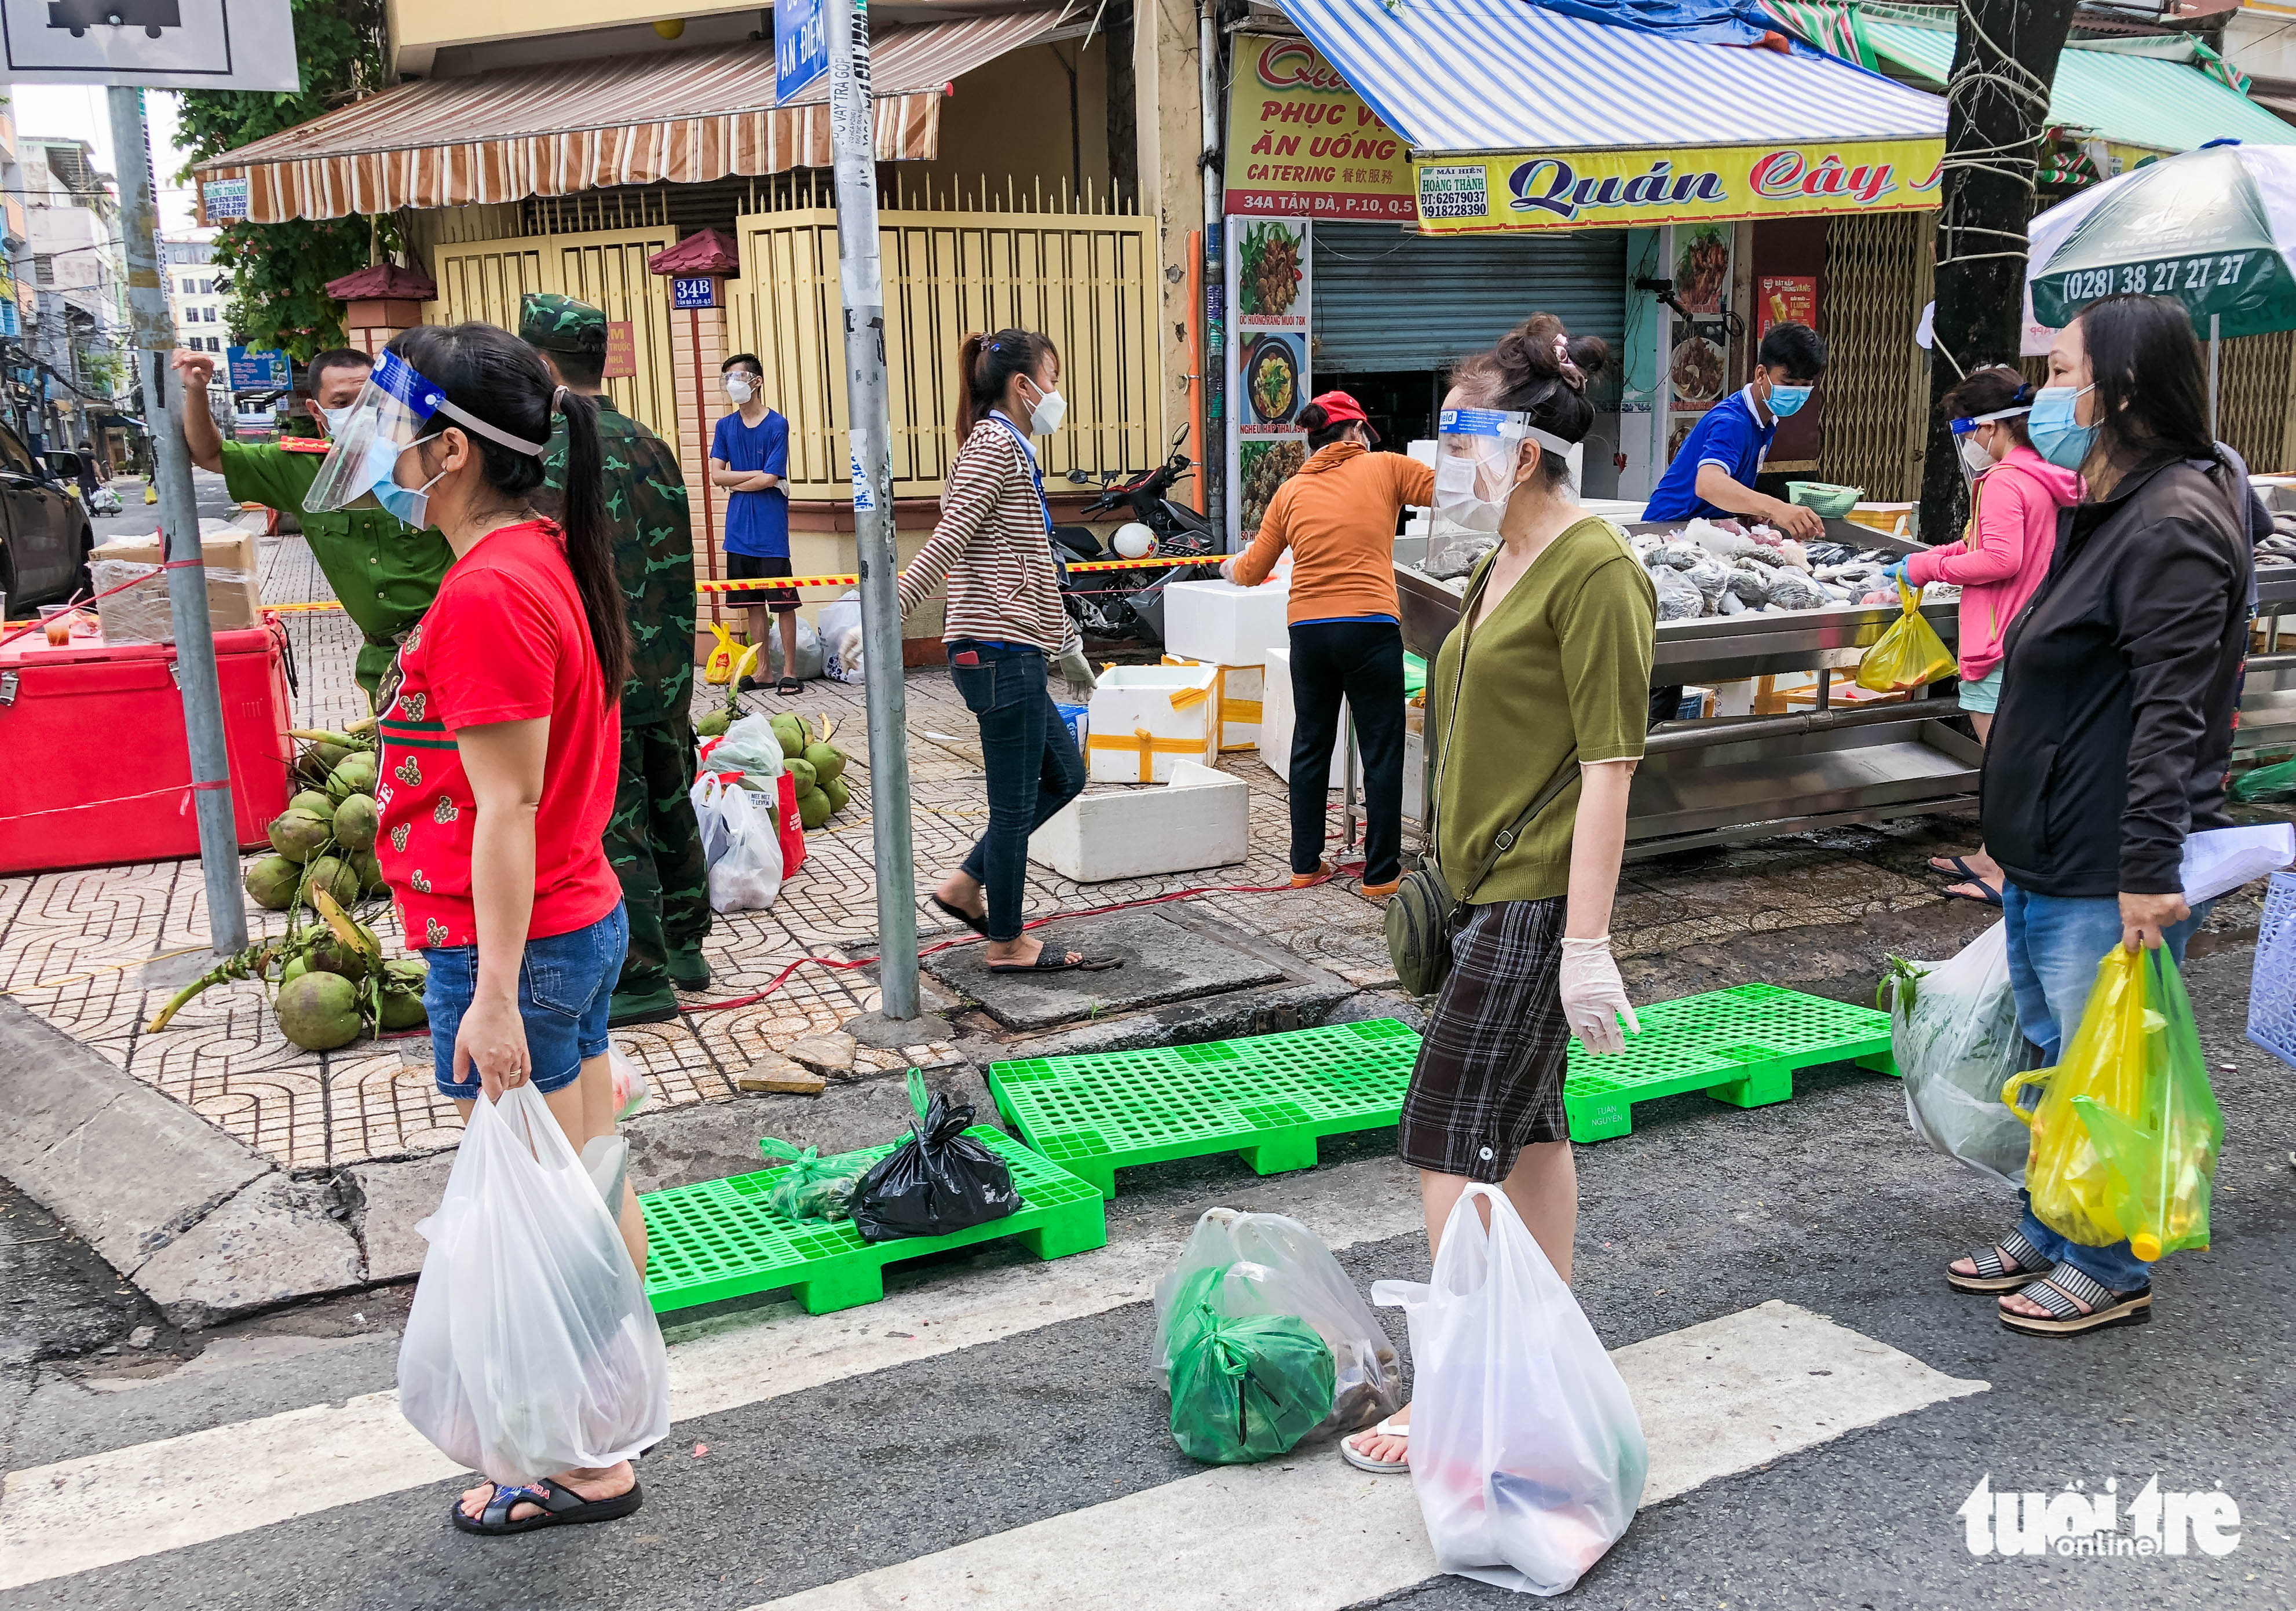 Residents are required to socially distance while shopping at the market. Photo: Chau Tuan / Tuoi Tre